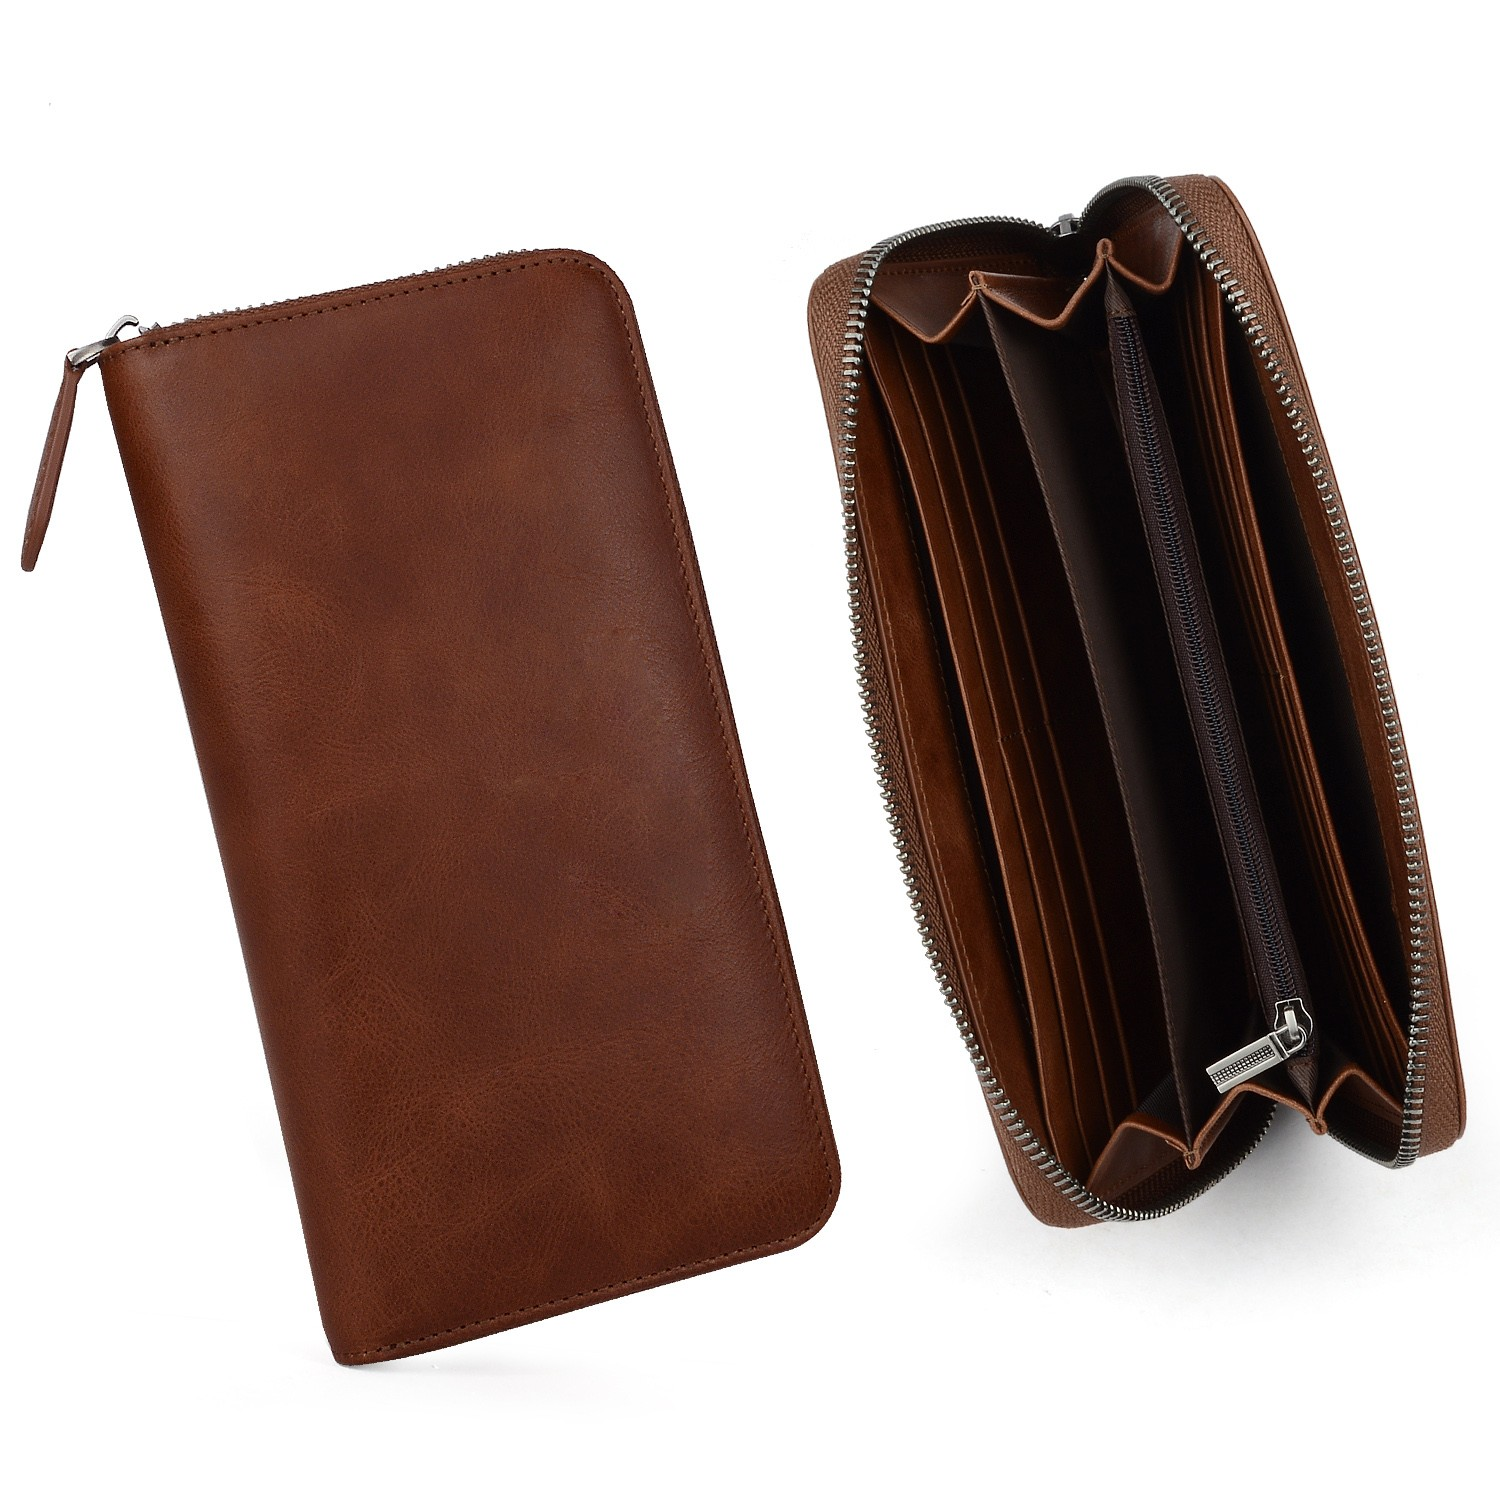 AIVI unisex leather card wallet for sale for ipone 6/6plus-8